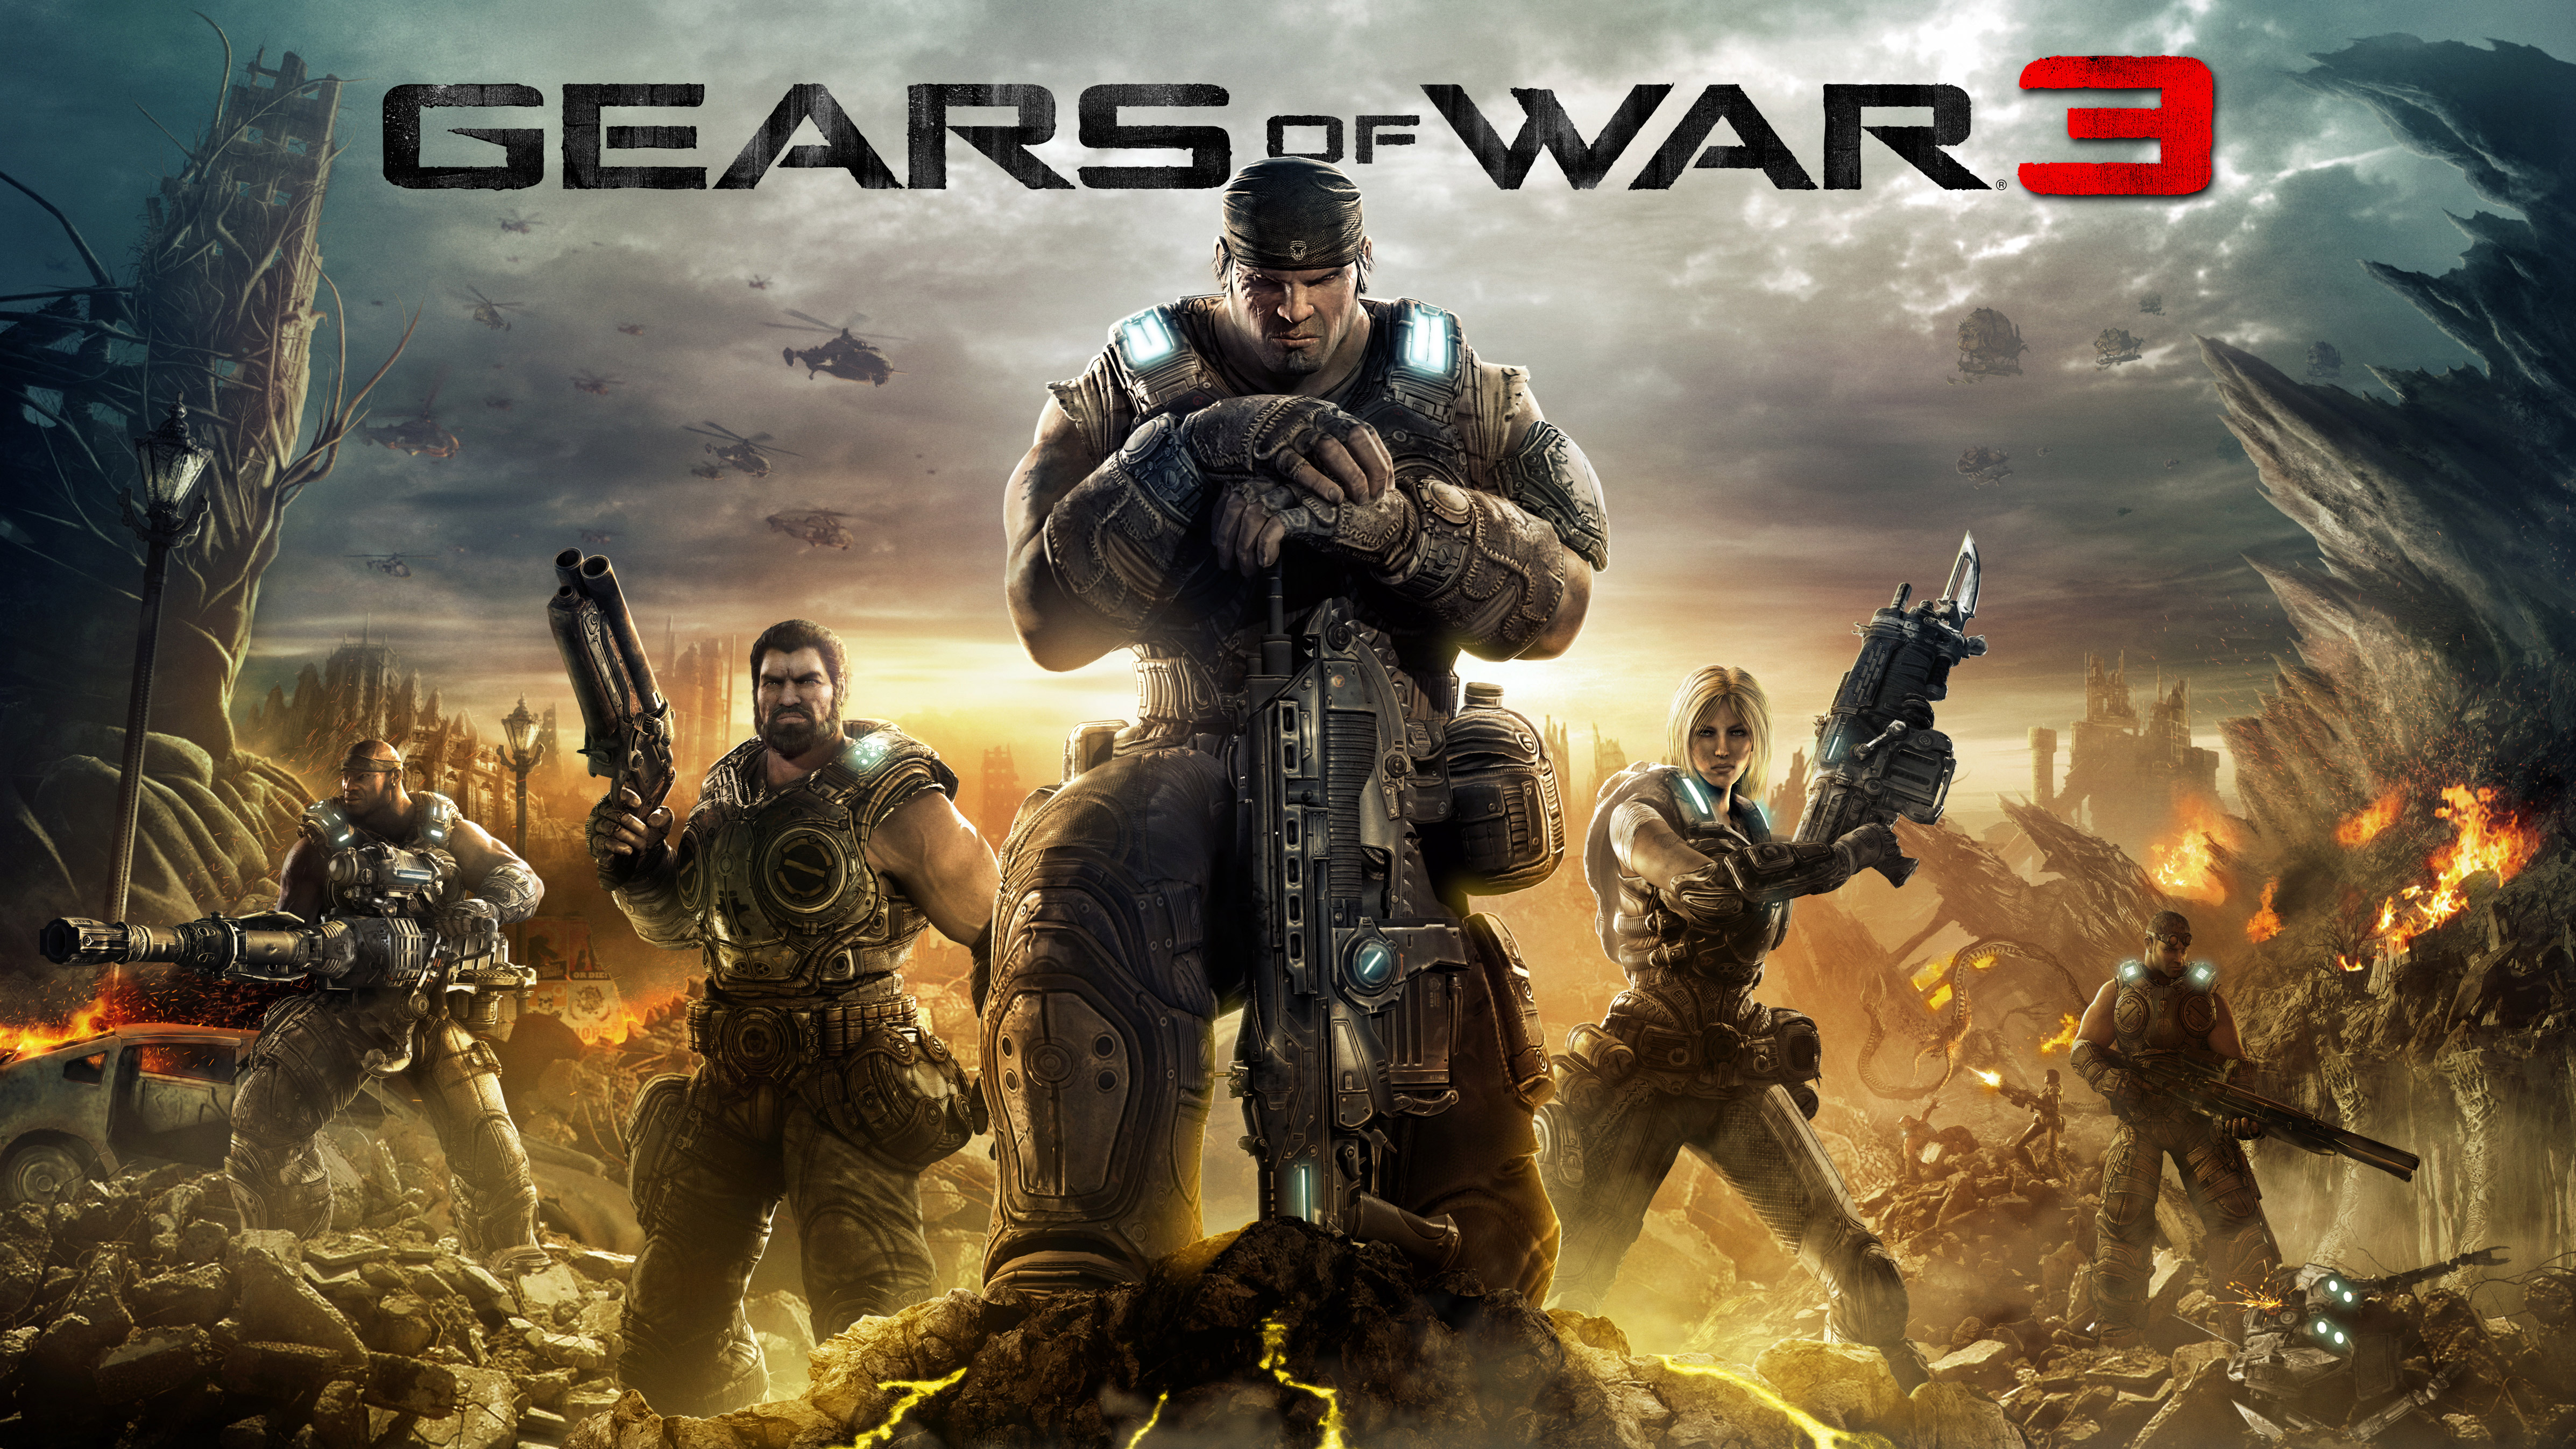 Gears Of War 3 Hd Wallpapers For Android: Gears Of War 3 4k, HD Games, 4k Wallpapers, Images